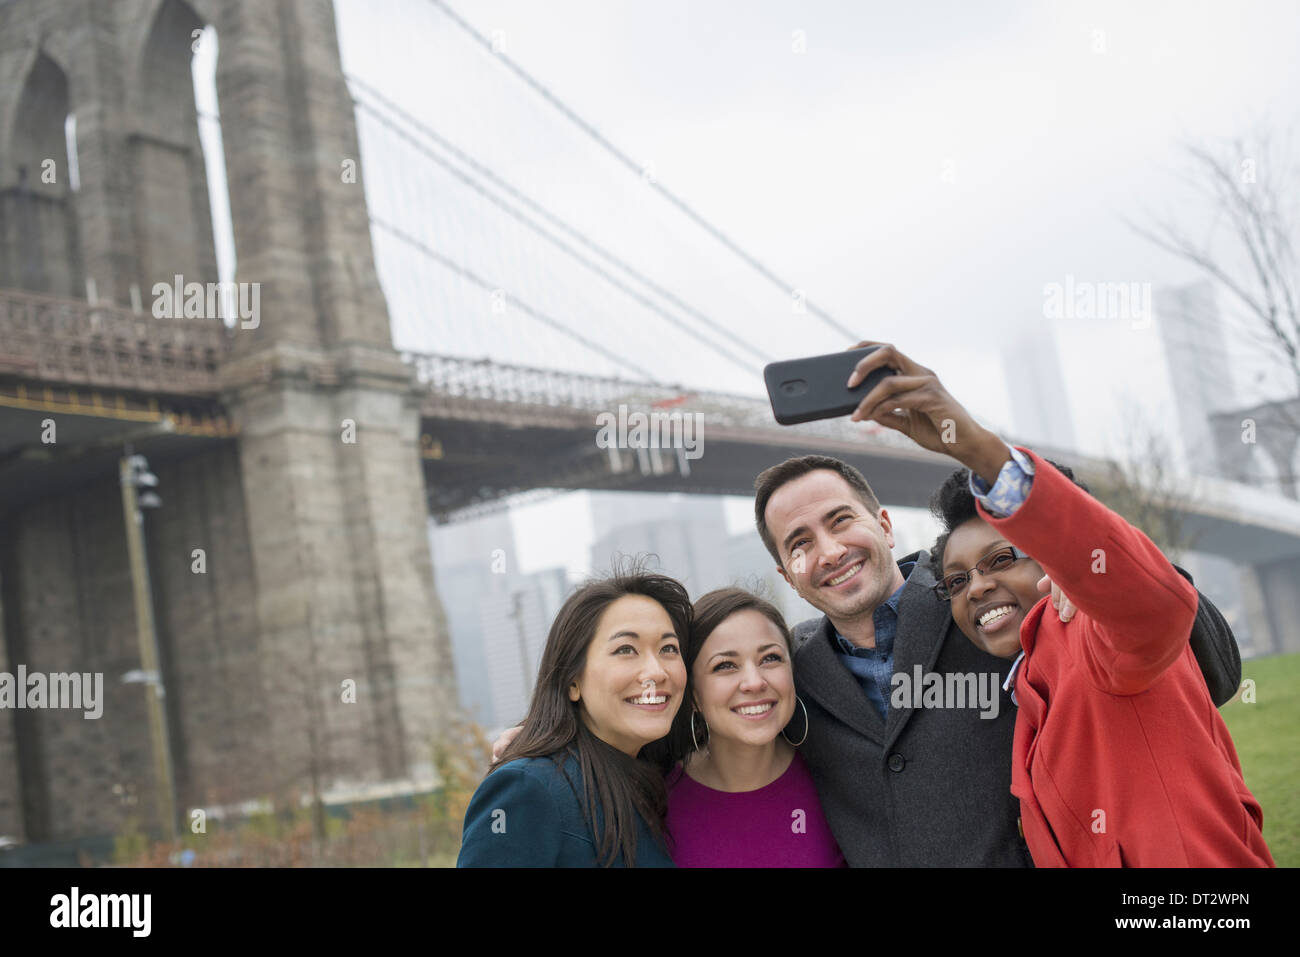 New York city The Brooklyn Bridge crossing over the East River Four friends taking a picture with a phone a selfy of themselves - Stock Image